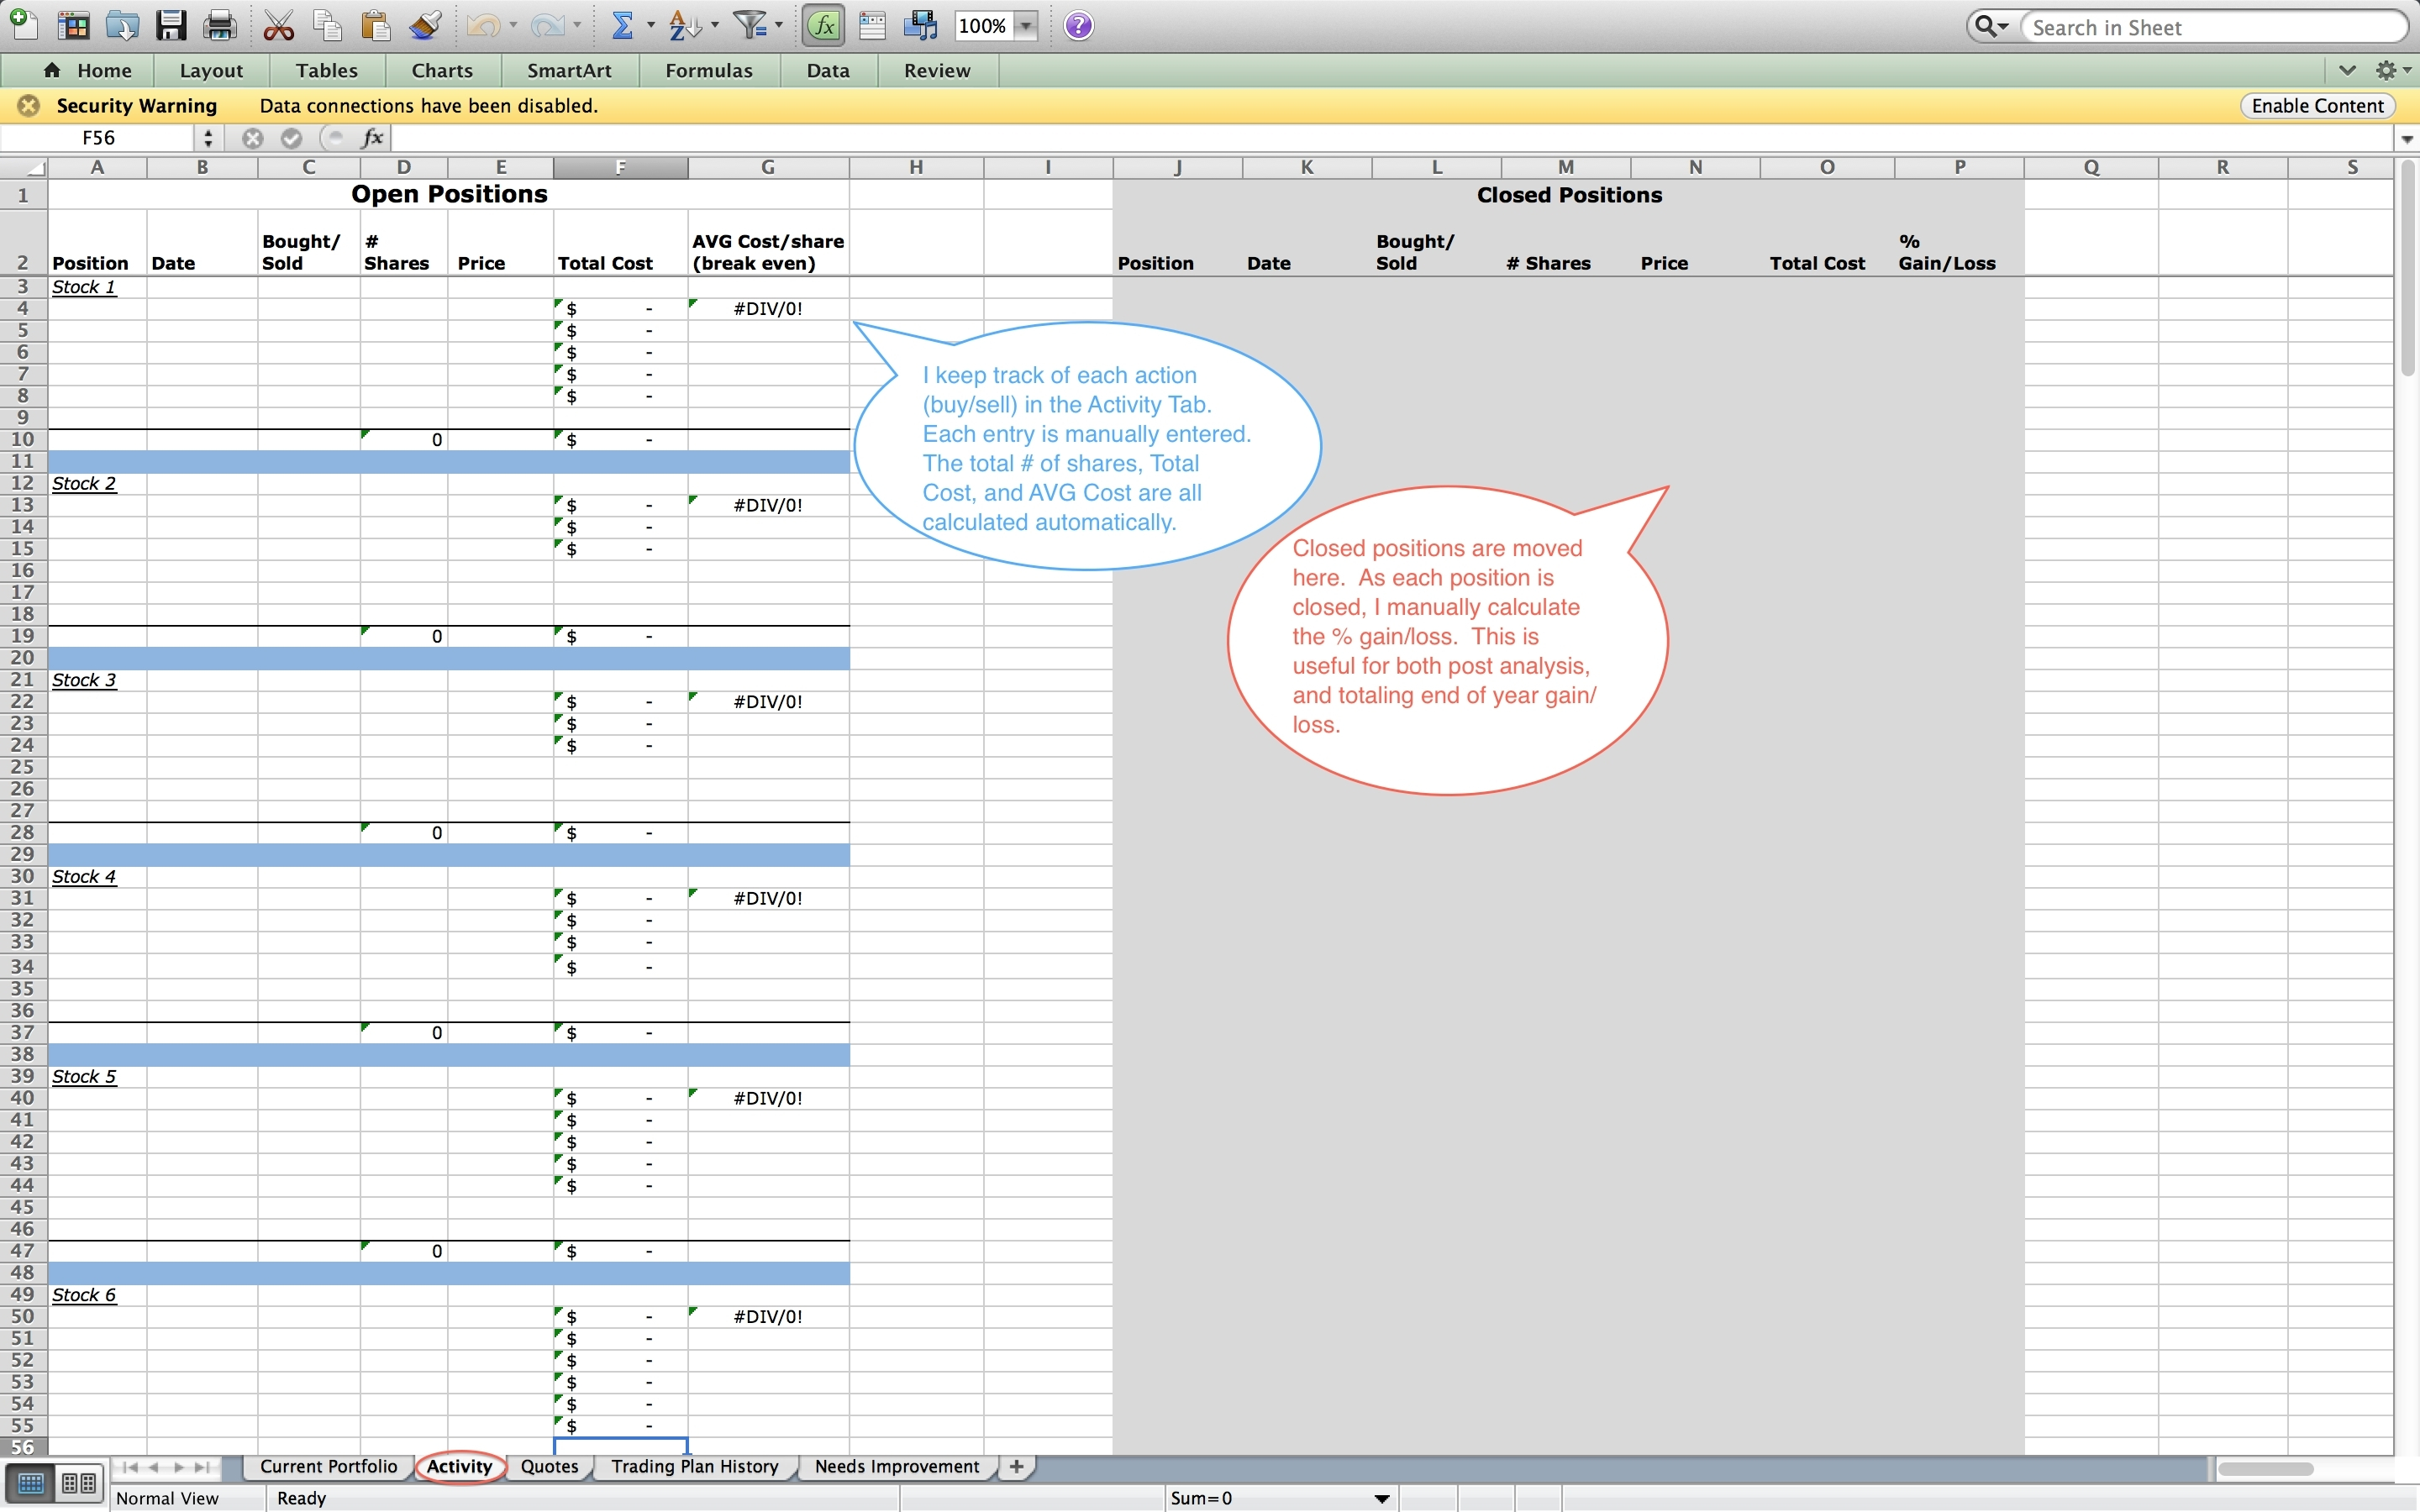 Options Trading Worksheet Inside Option Trading Spreadsheet